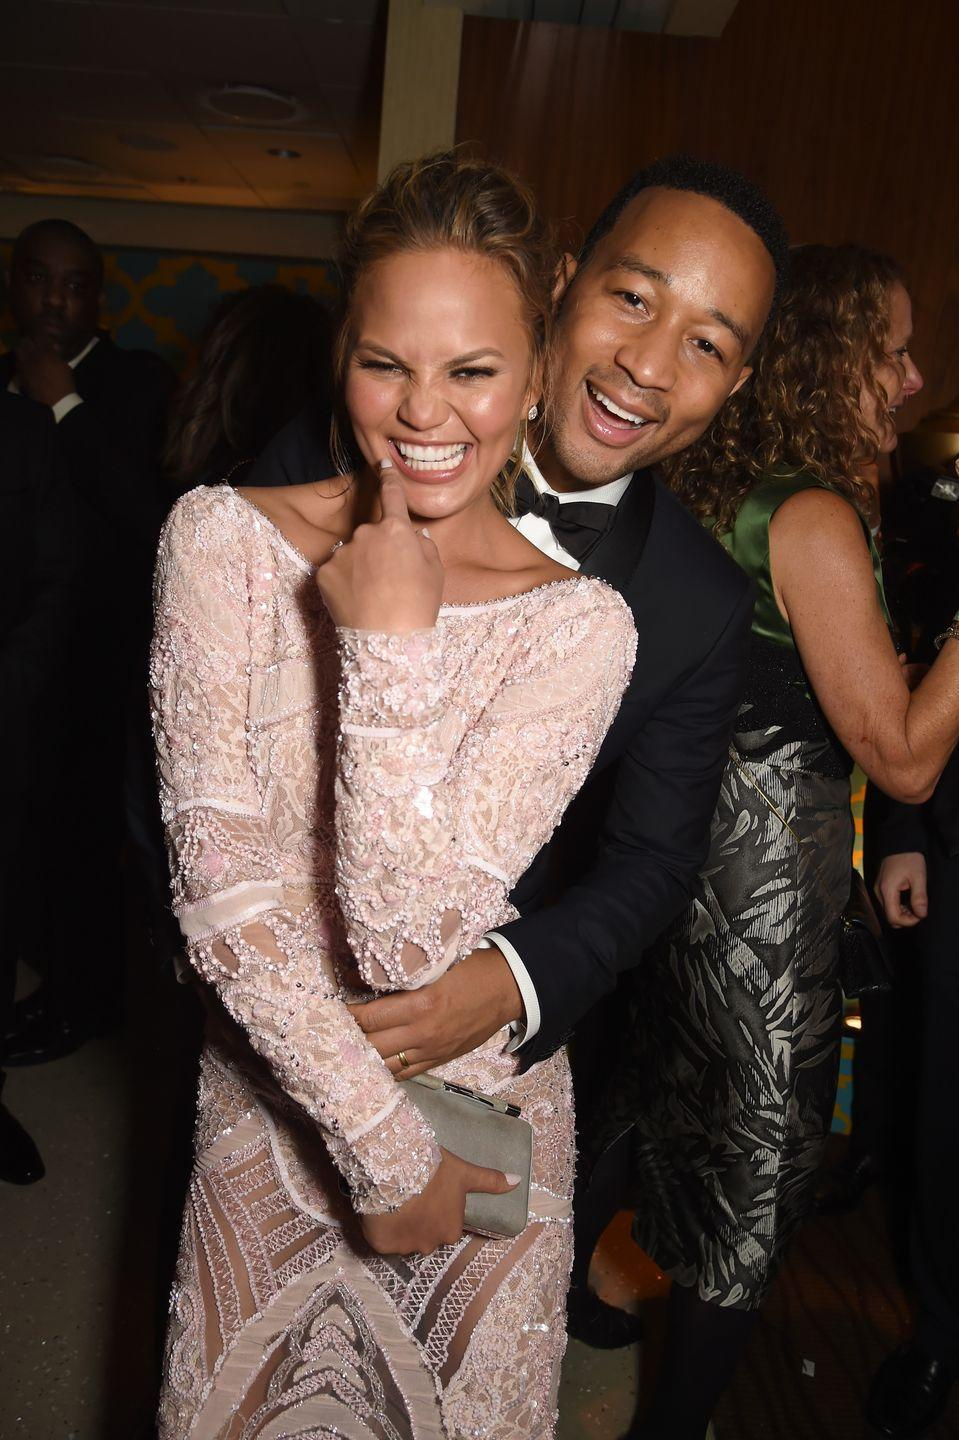 """<p><a href=""""https://www.elle.com/uk/life-and-culture/g29620709/chrissy-teigen-john-legend-wife-relationship/"""" rel=""""nofollow noopener"""" target=""""_blank"""" data-ylk=""""slk:Fan favourite couple, Teigen and Legend,"""" class=""""link rapid-noclick-resp"""">Fan favourite couple, Teigen and Legend,</a> met in 2007 on the set of his music video and married in 2013. They now have a daughter called Luna and a son called Miles.</p>"""